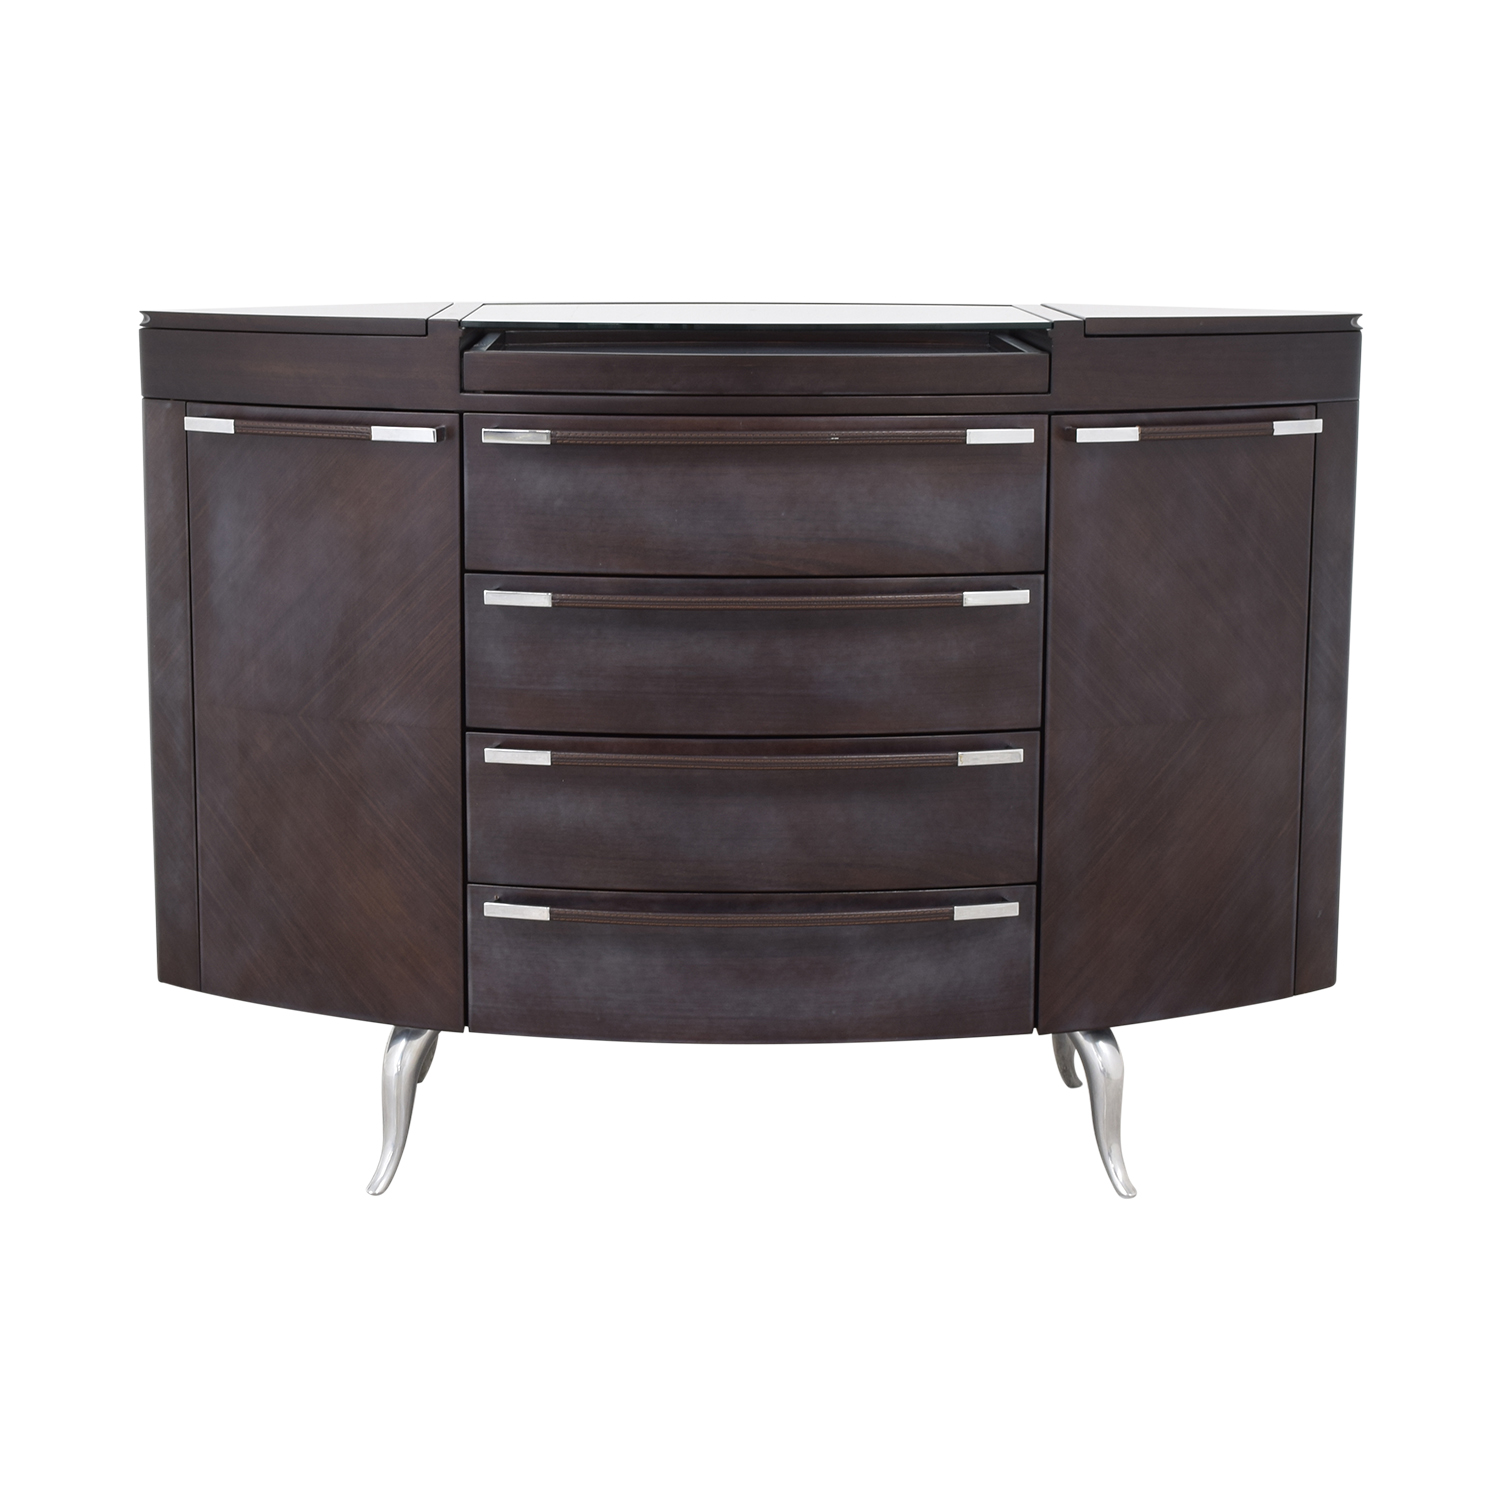 Maurice Villency Oval Elliptical Chest of Drawers / Dressers